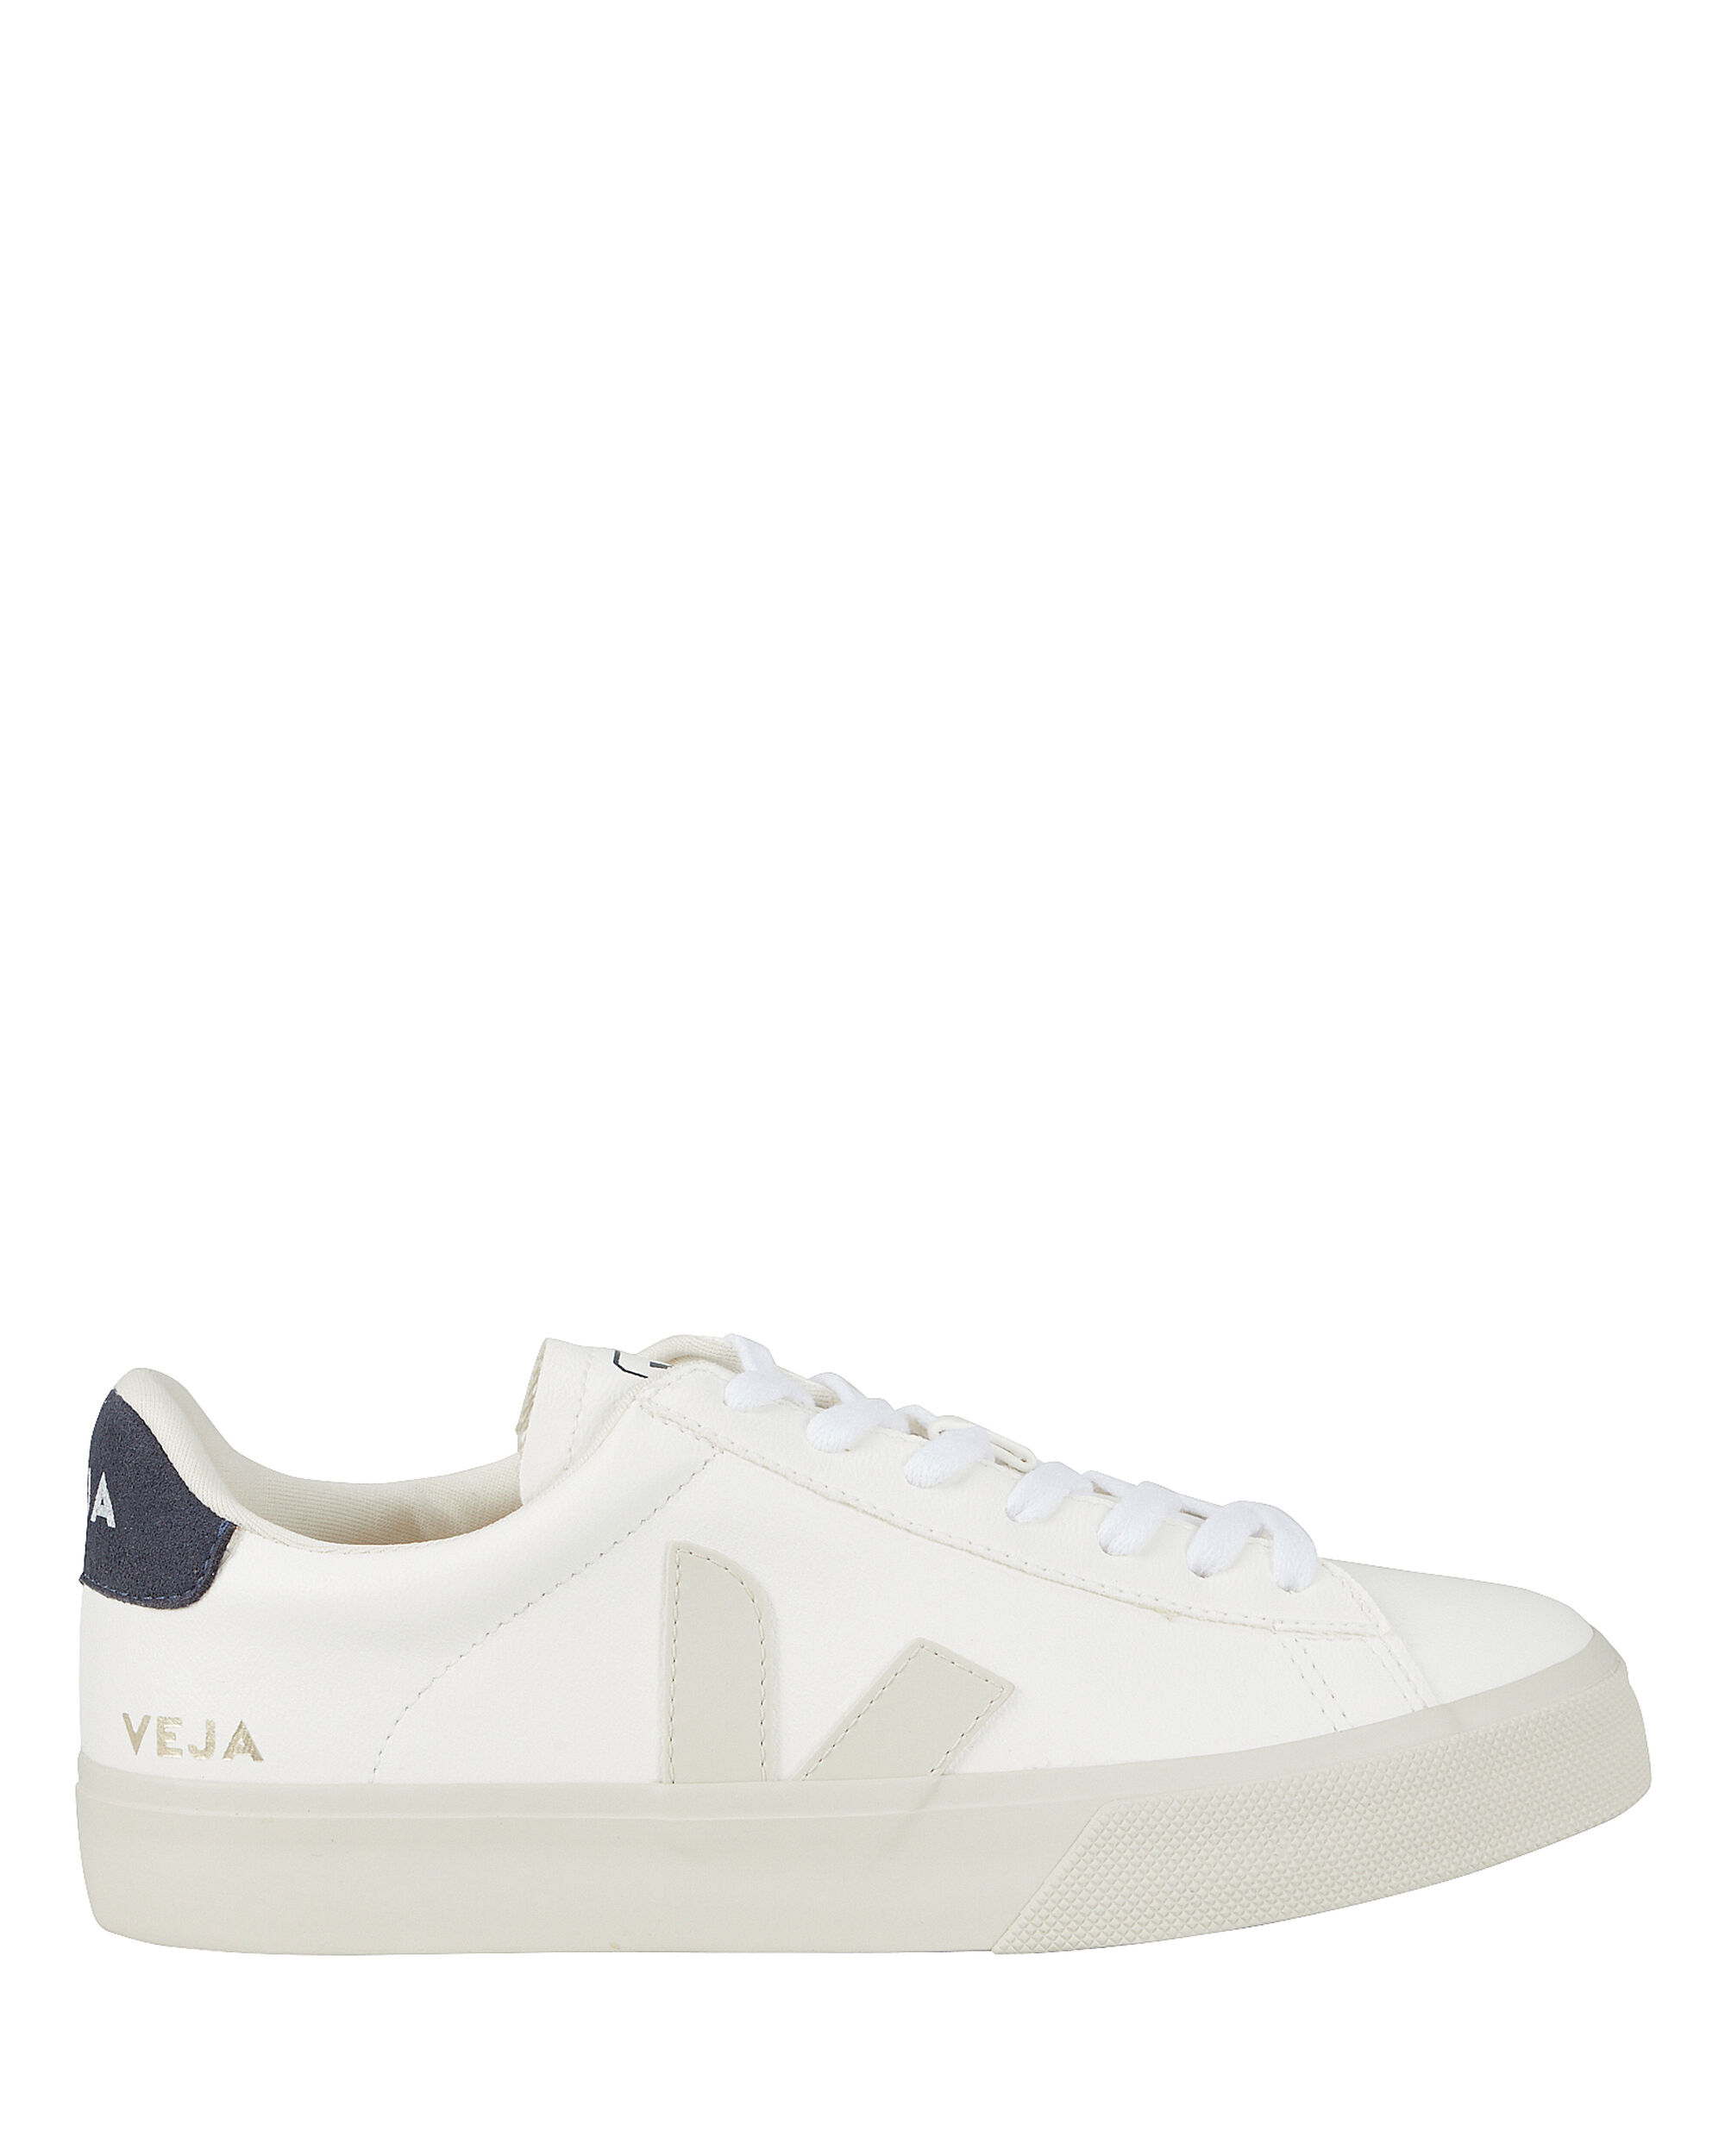 Campo Low-Top Sneakers, WHITE/NAVY, hi-res